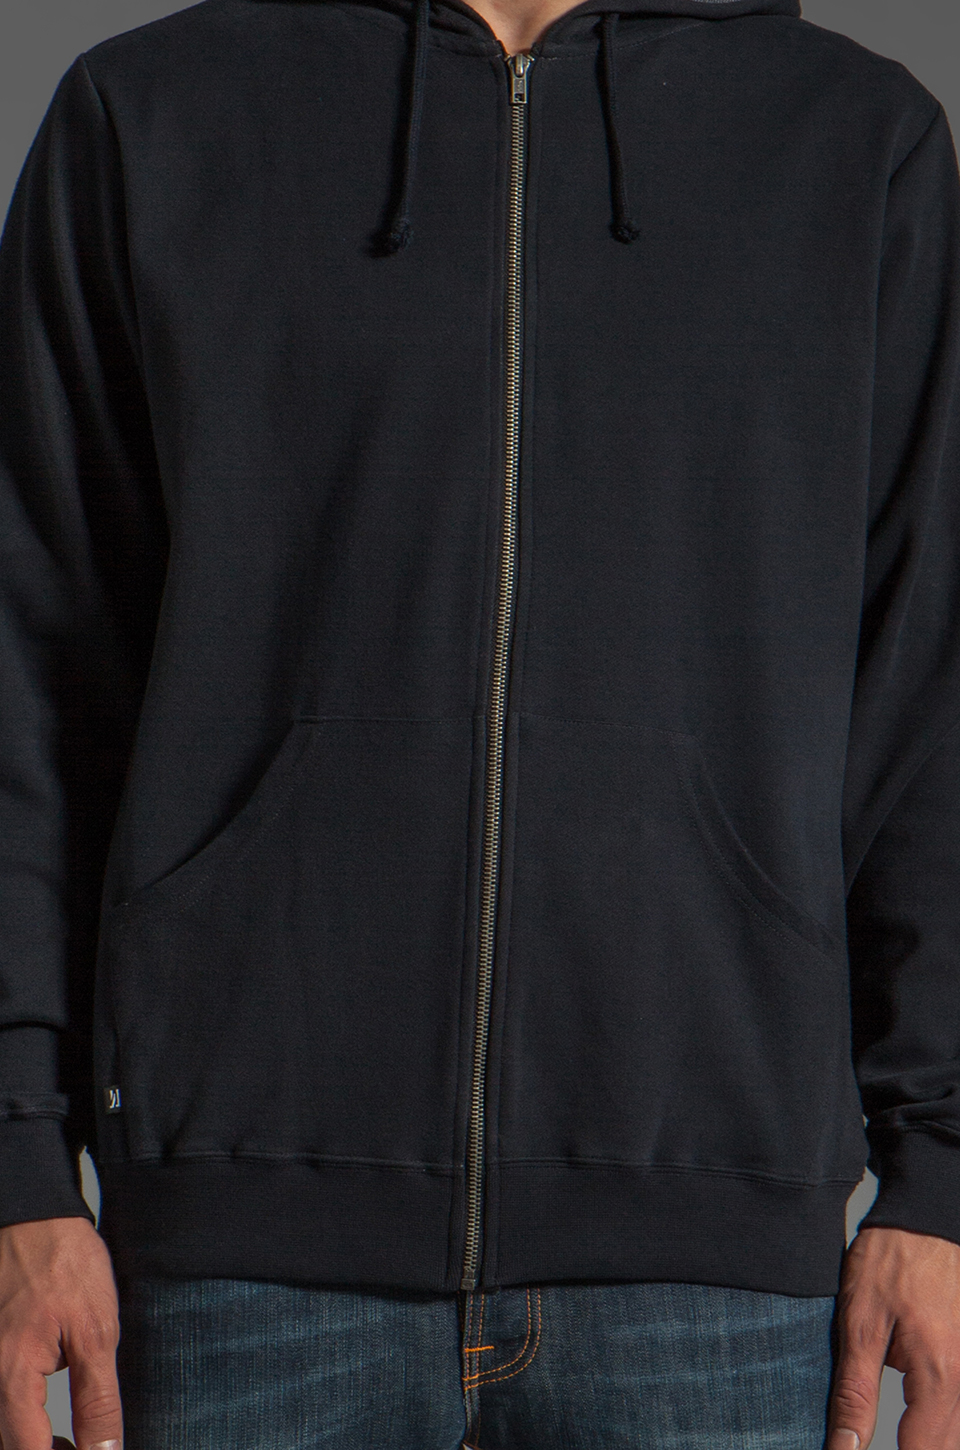 COMUNE CS Zipp Jacket in Black